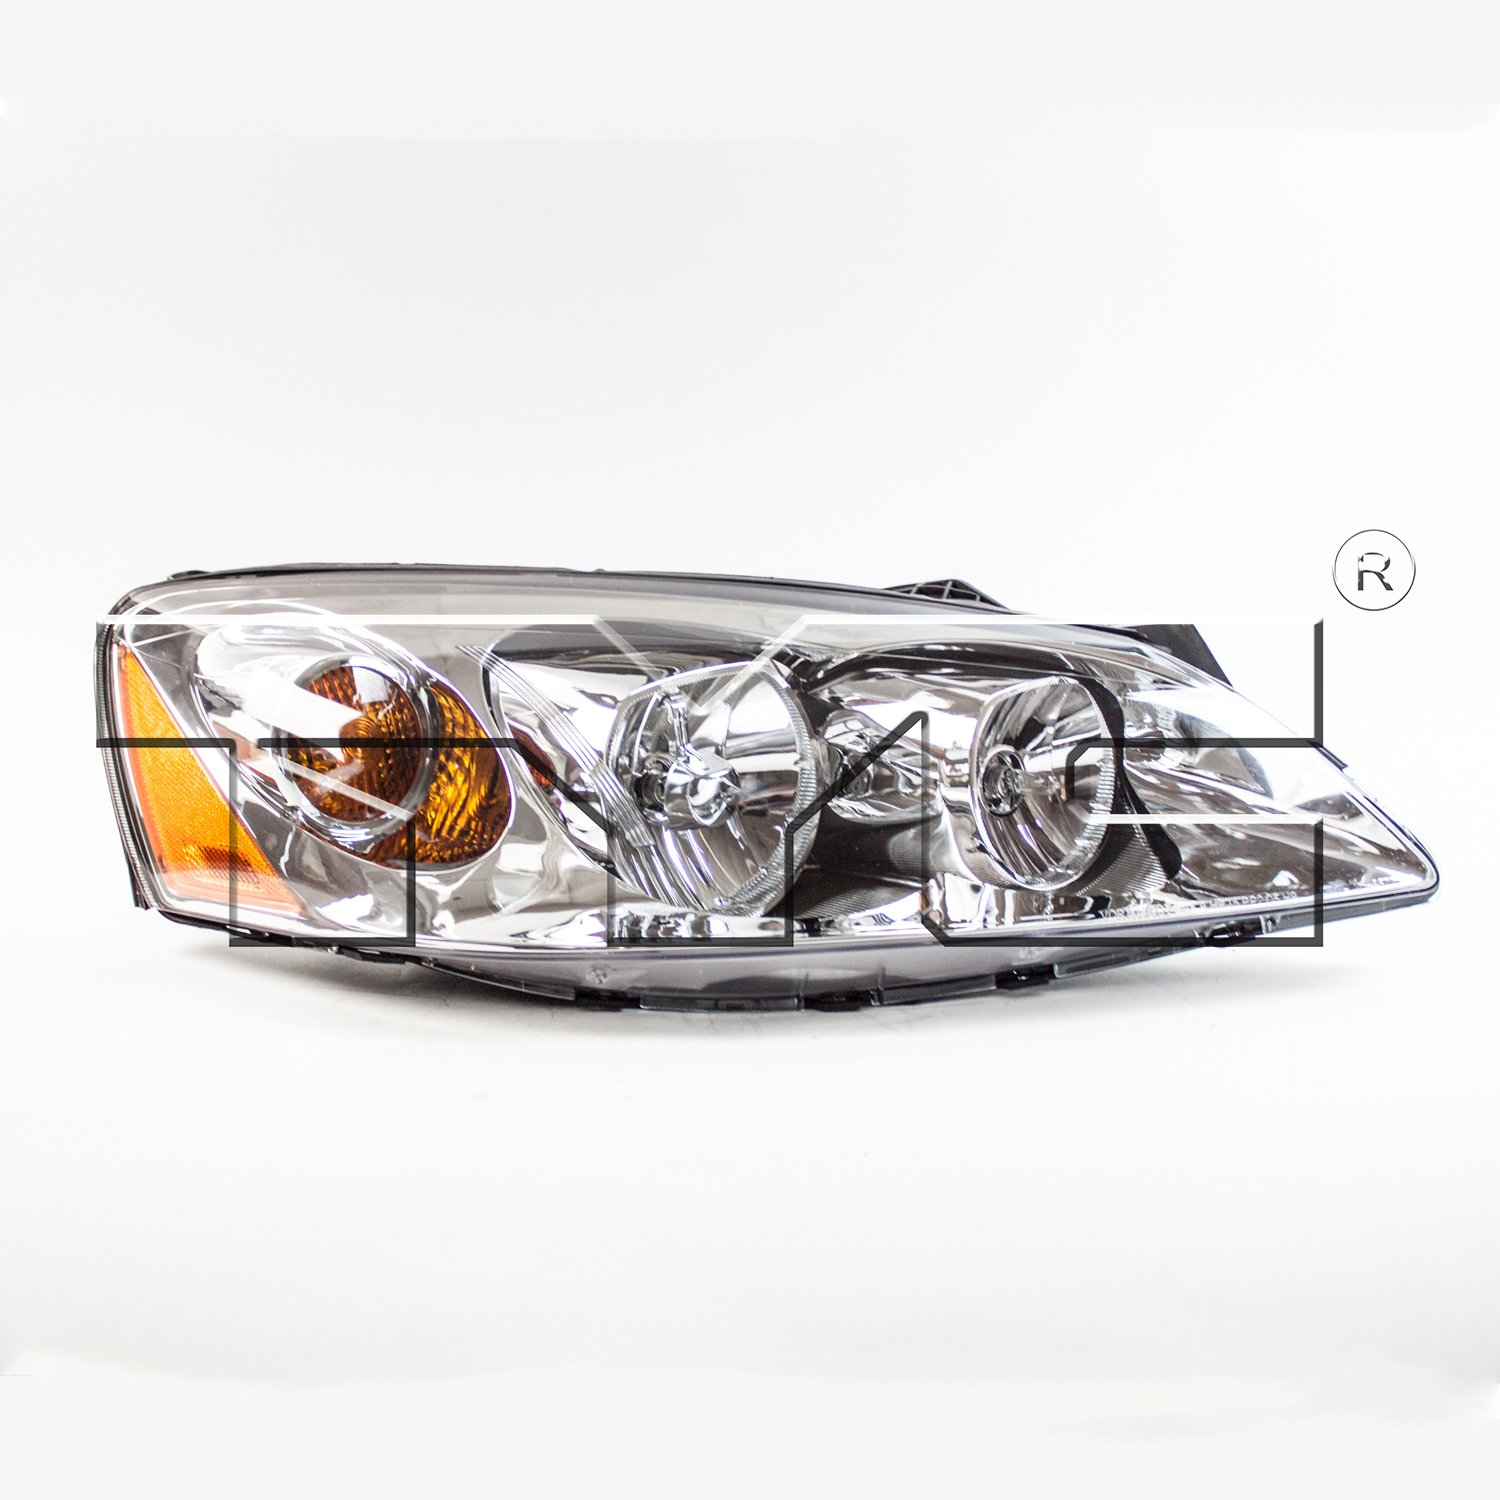 2008 Pontiac G6 Headlight Embly Ty 20 6677 00 1